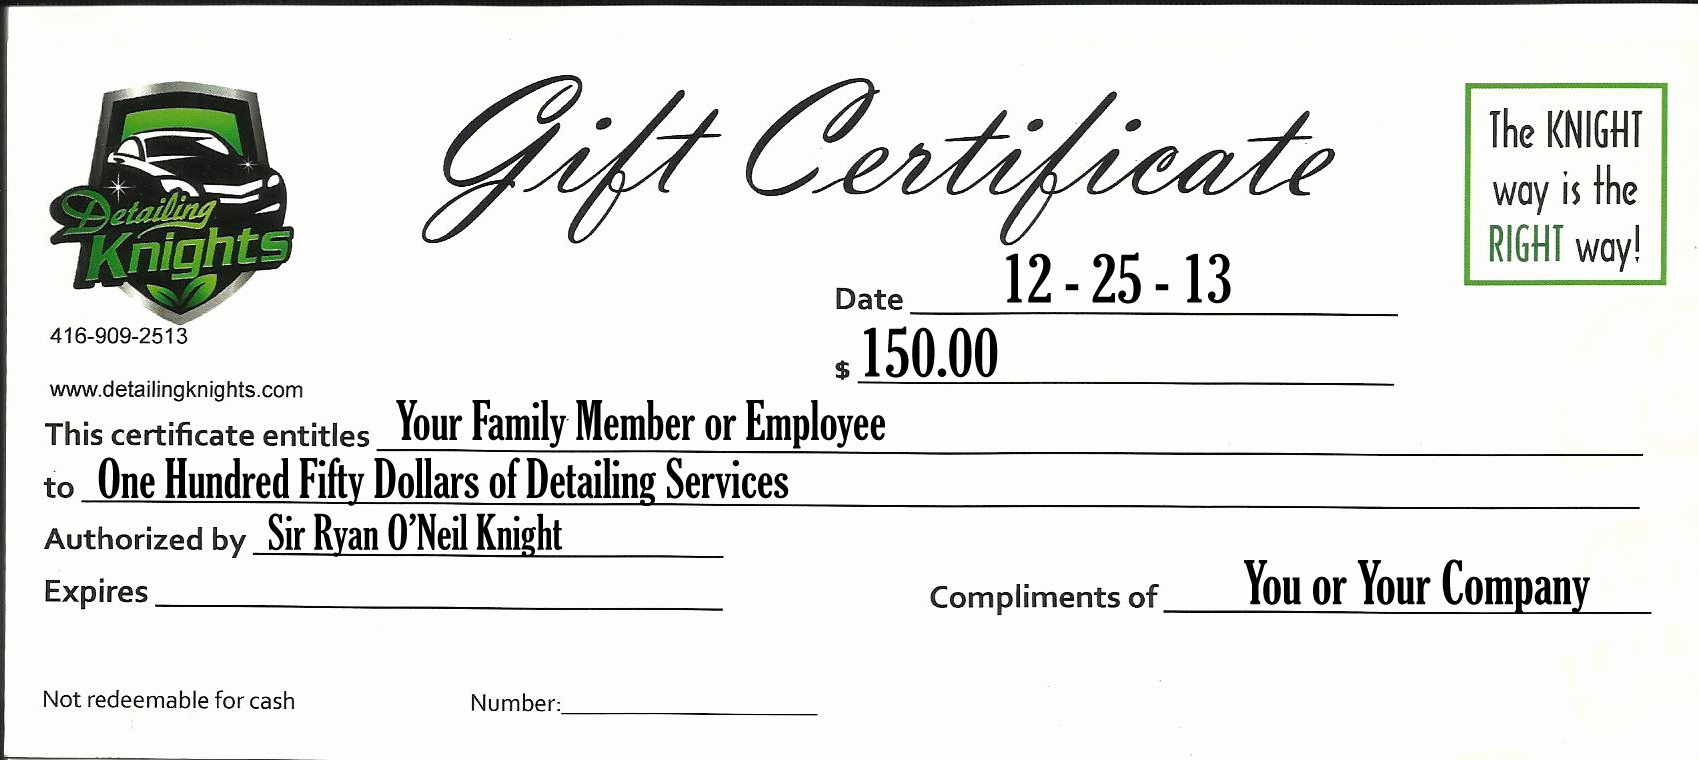 Car Wash Gift Certificate Template Elegant Index Of Cdn 29 2001 258